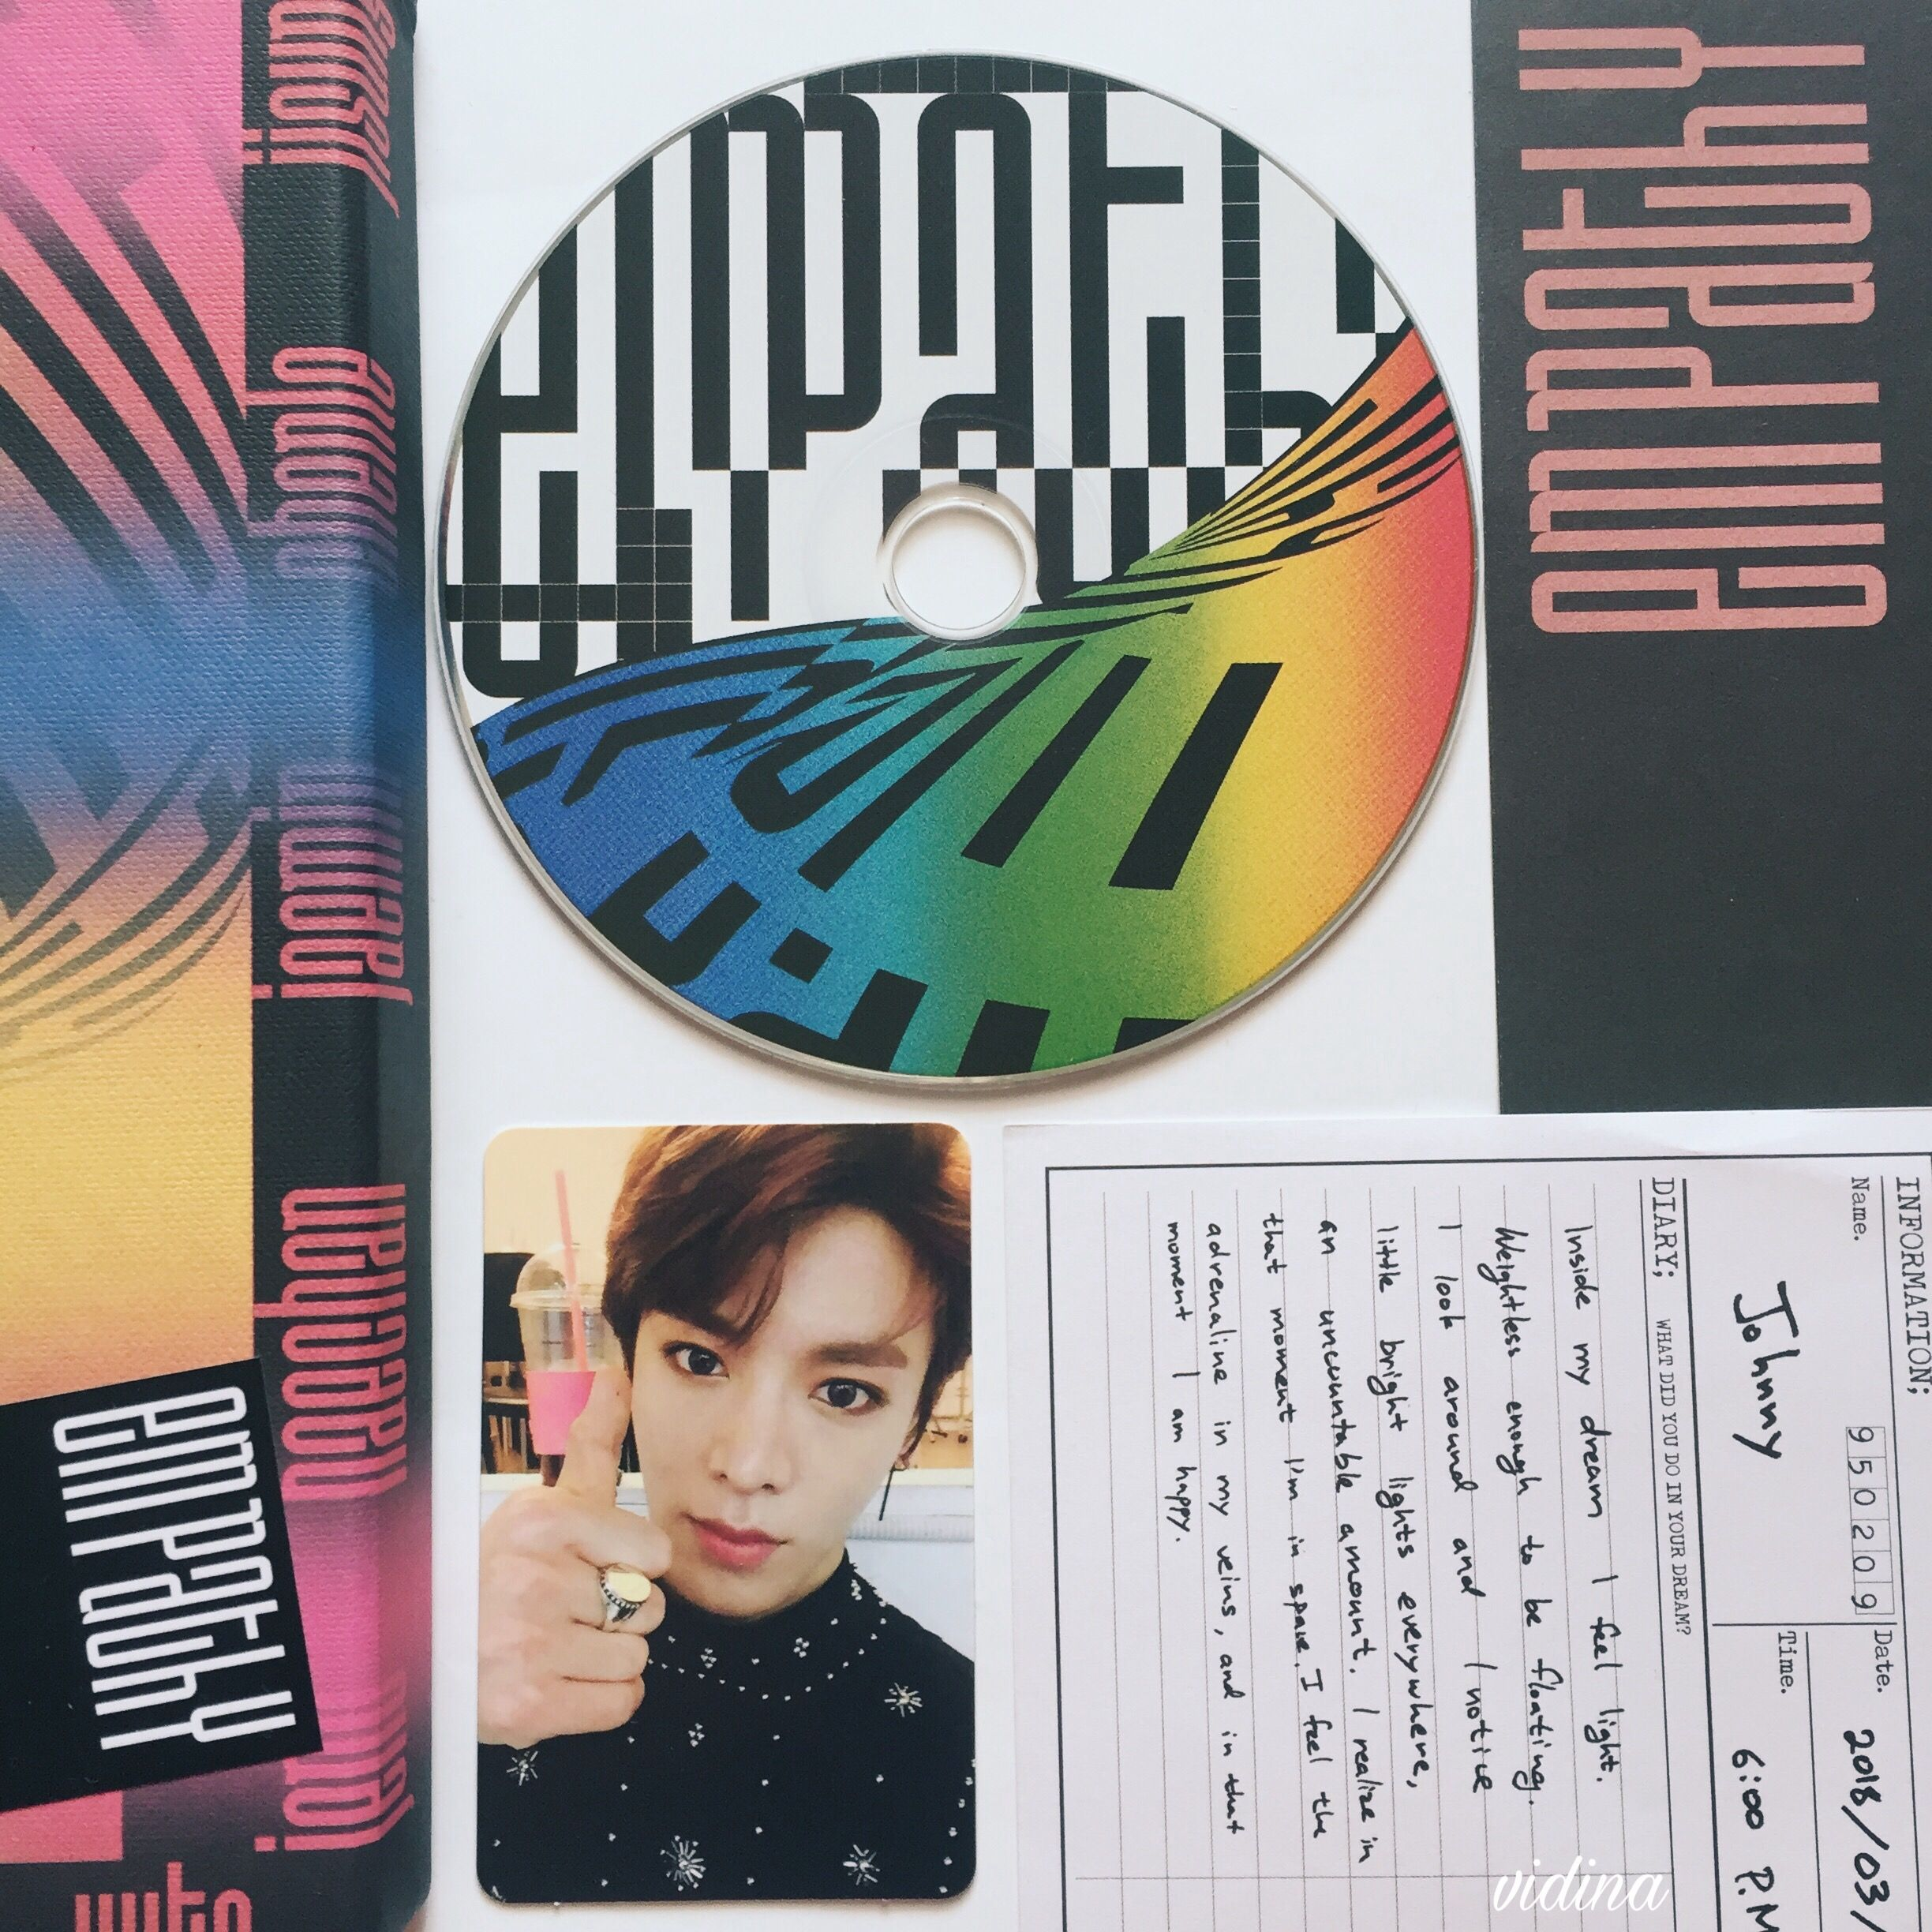 NCT 2018 Empathy Album, Dream version, Yuta photocard